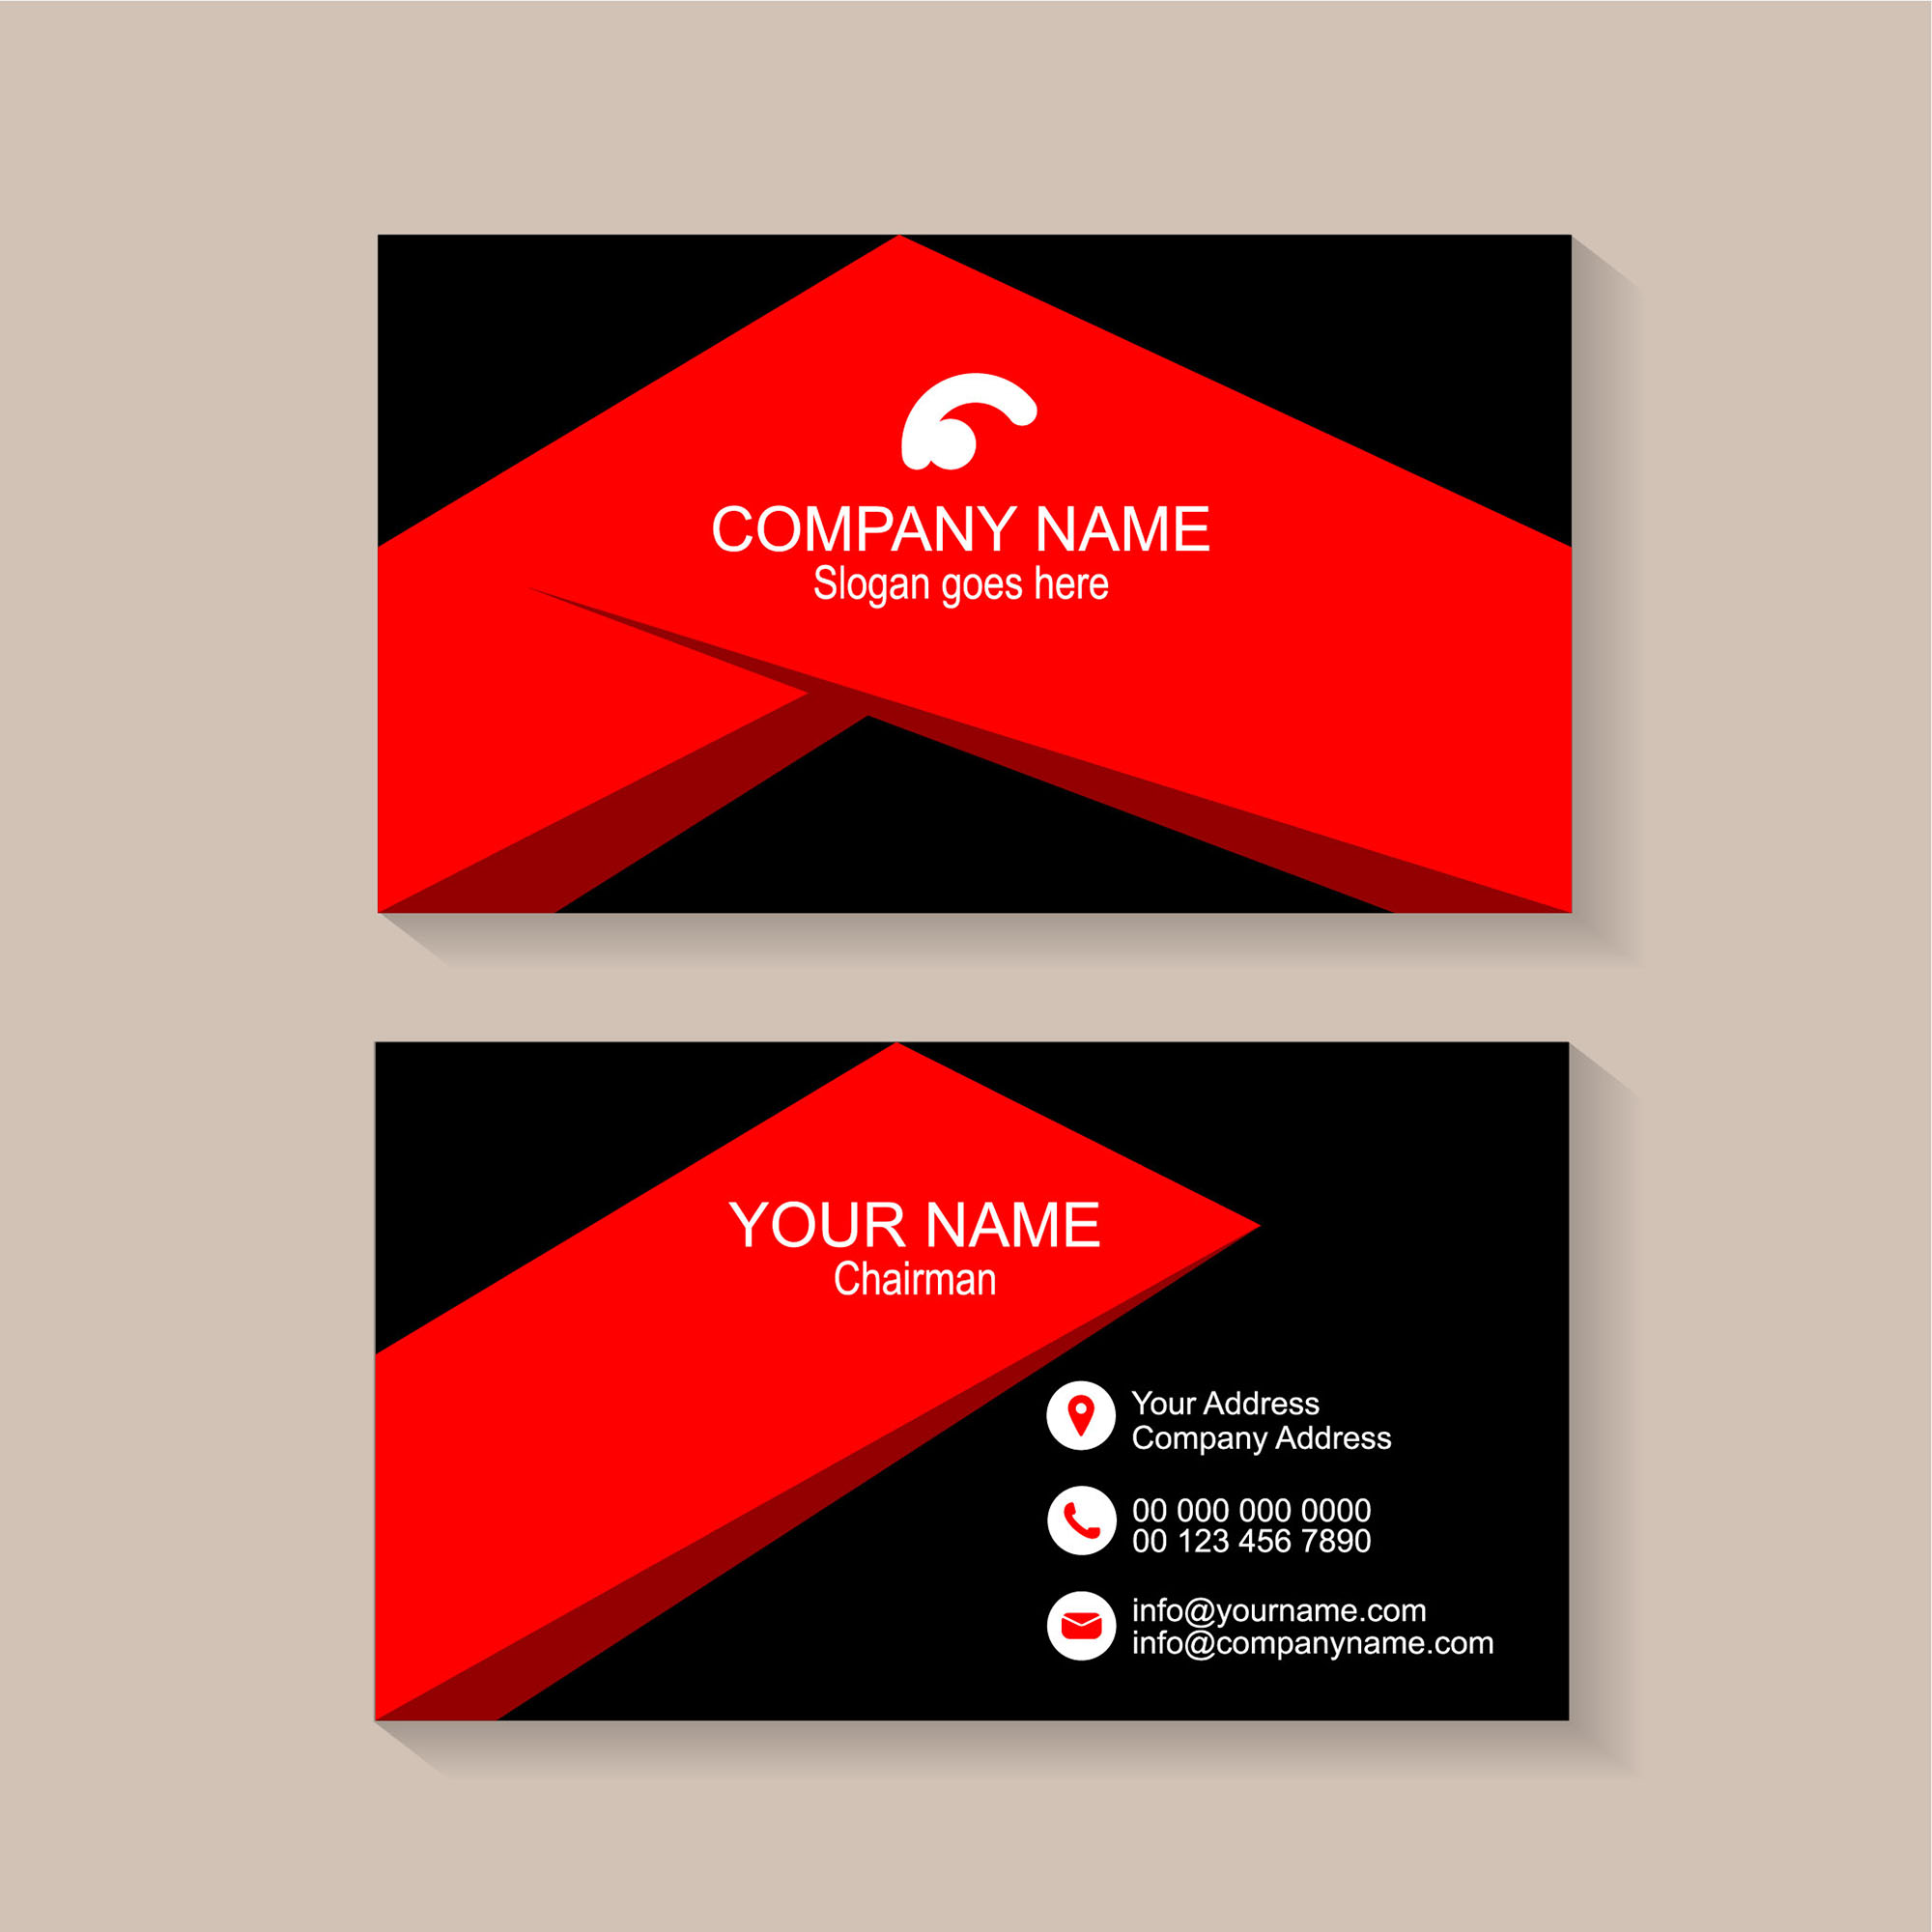 Business card template design free download wisxi business card business cards business card design business card template design templates reheart Gallery